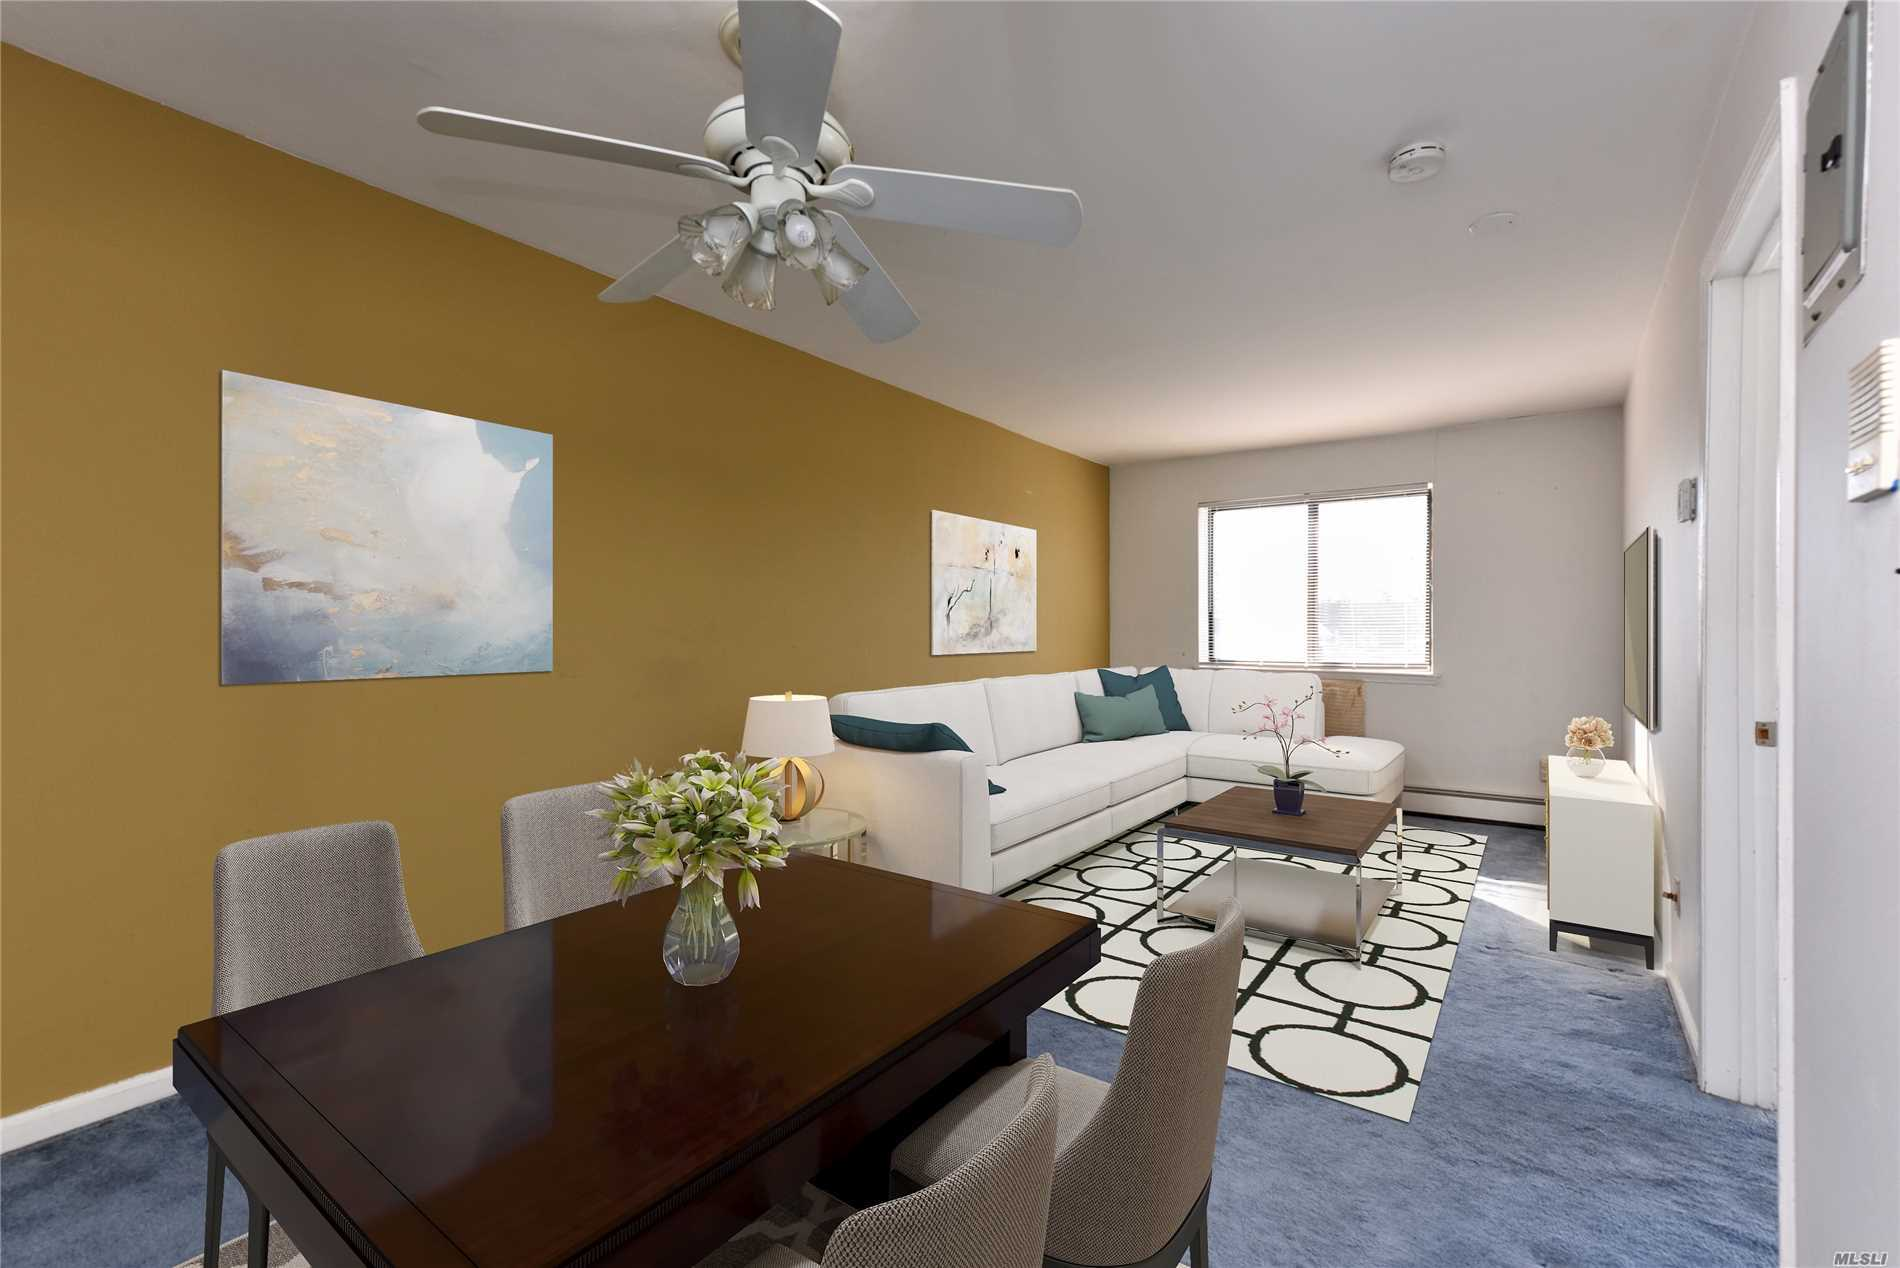 Beautiful And Large One Bedroom Condo In Flushing With Updated Kitchen And Bathroom, Private Washer/Dryer In The Basement, Living Room With Balcony. Low Common Charge Of $182 A Month, Near Lirr, Q12, Q65, To Flushing #7 Train, Near Restaurants And Shops. Convenient To All.